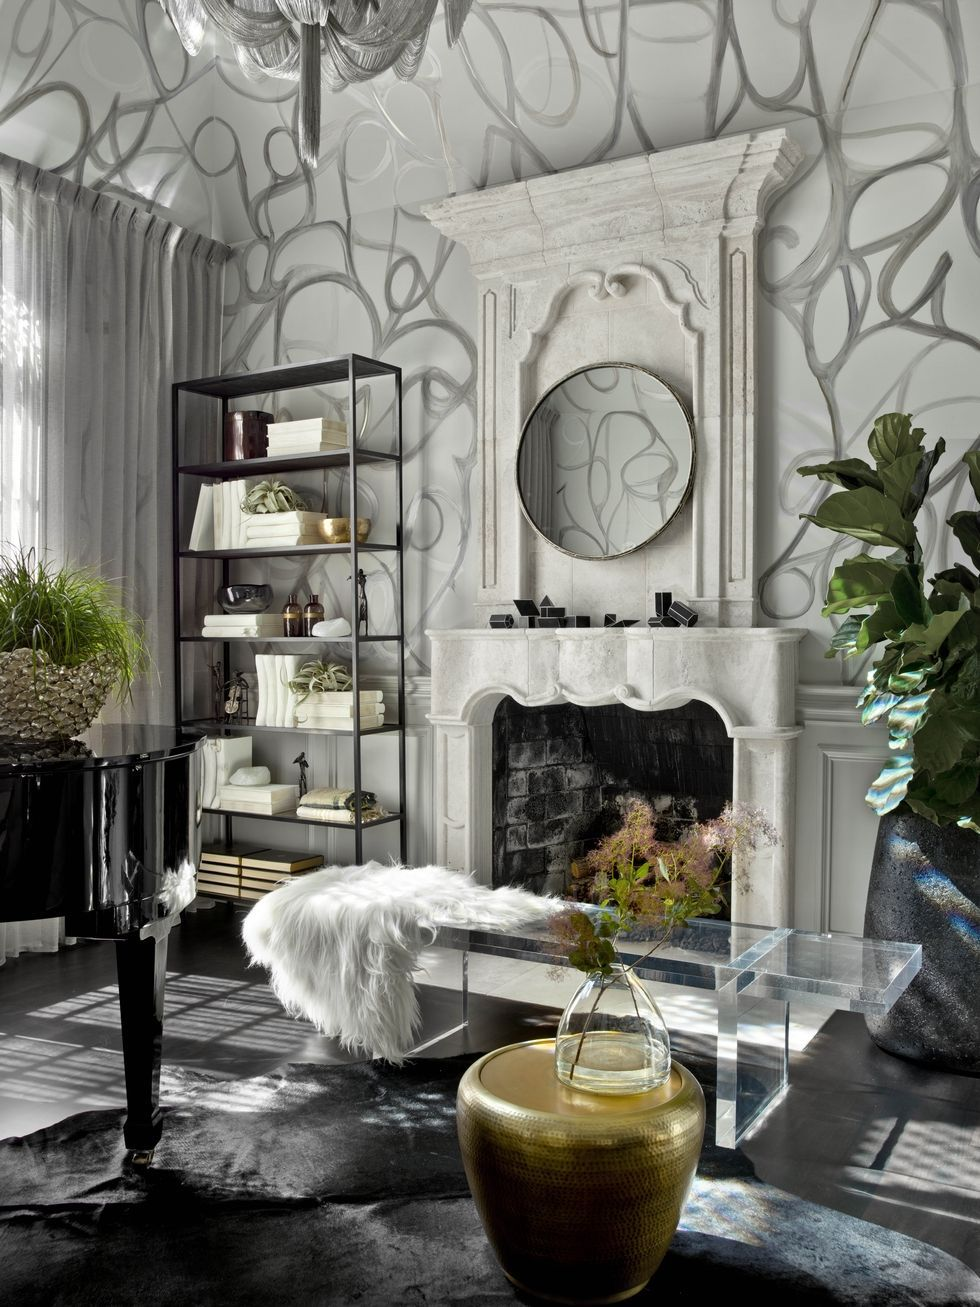 35 Best Black and White Decor